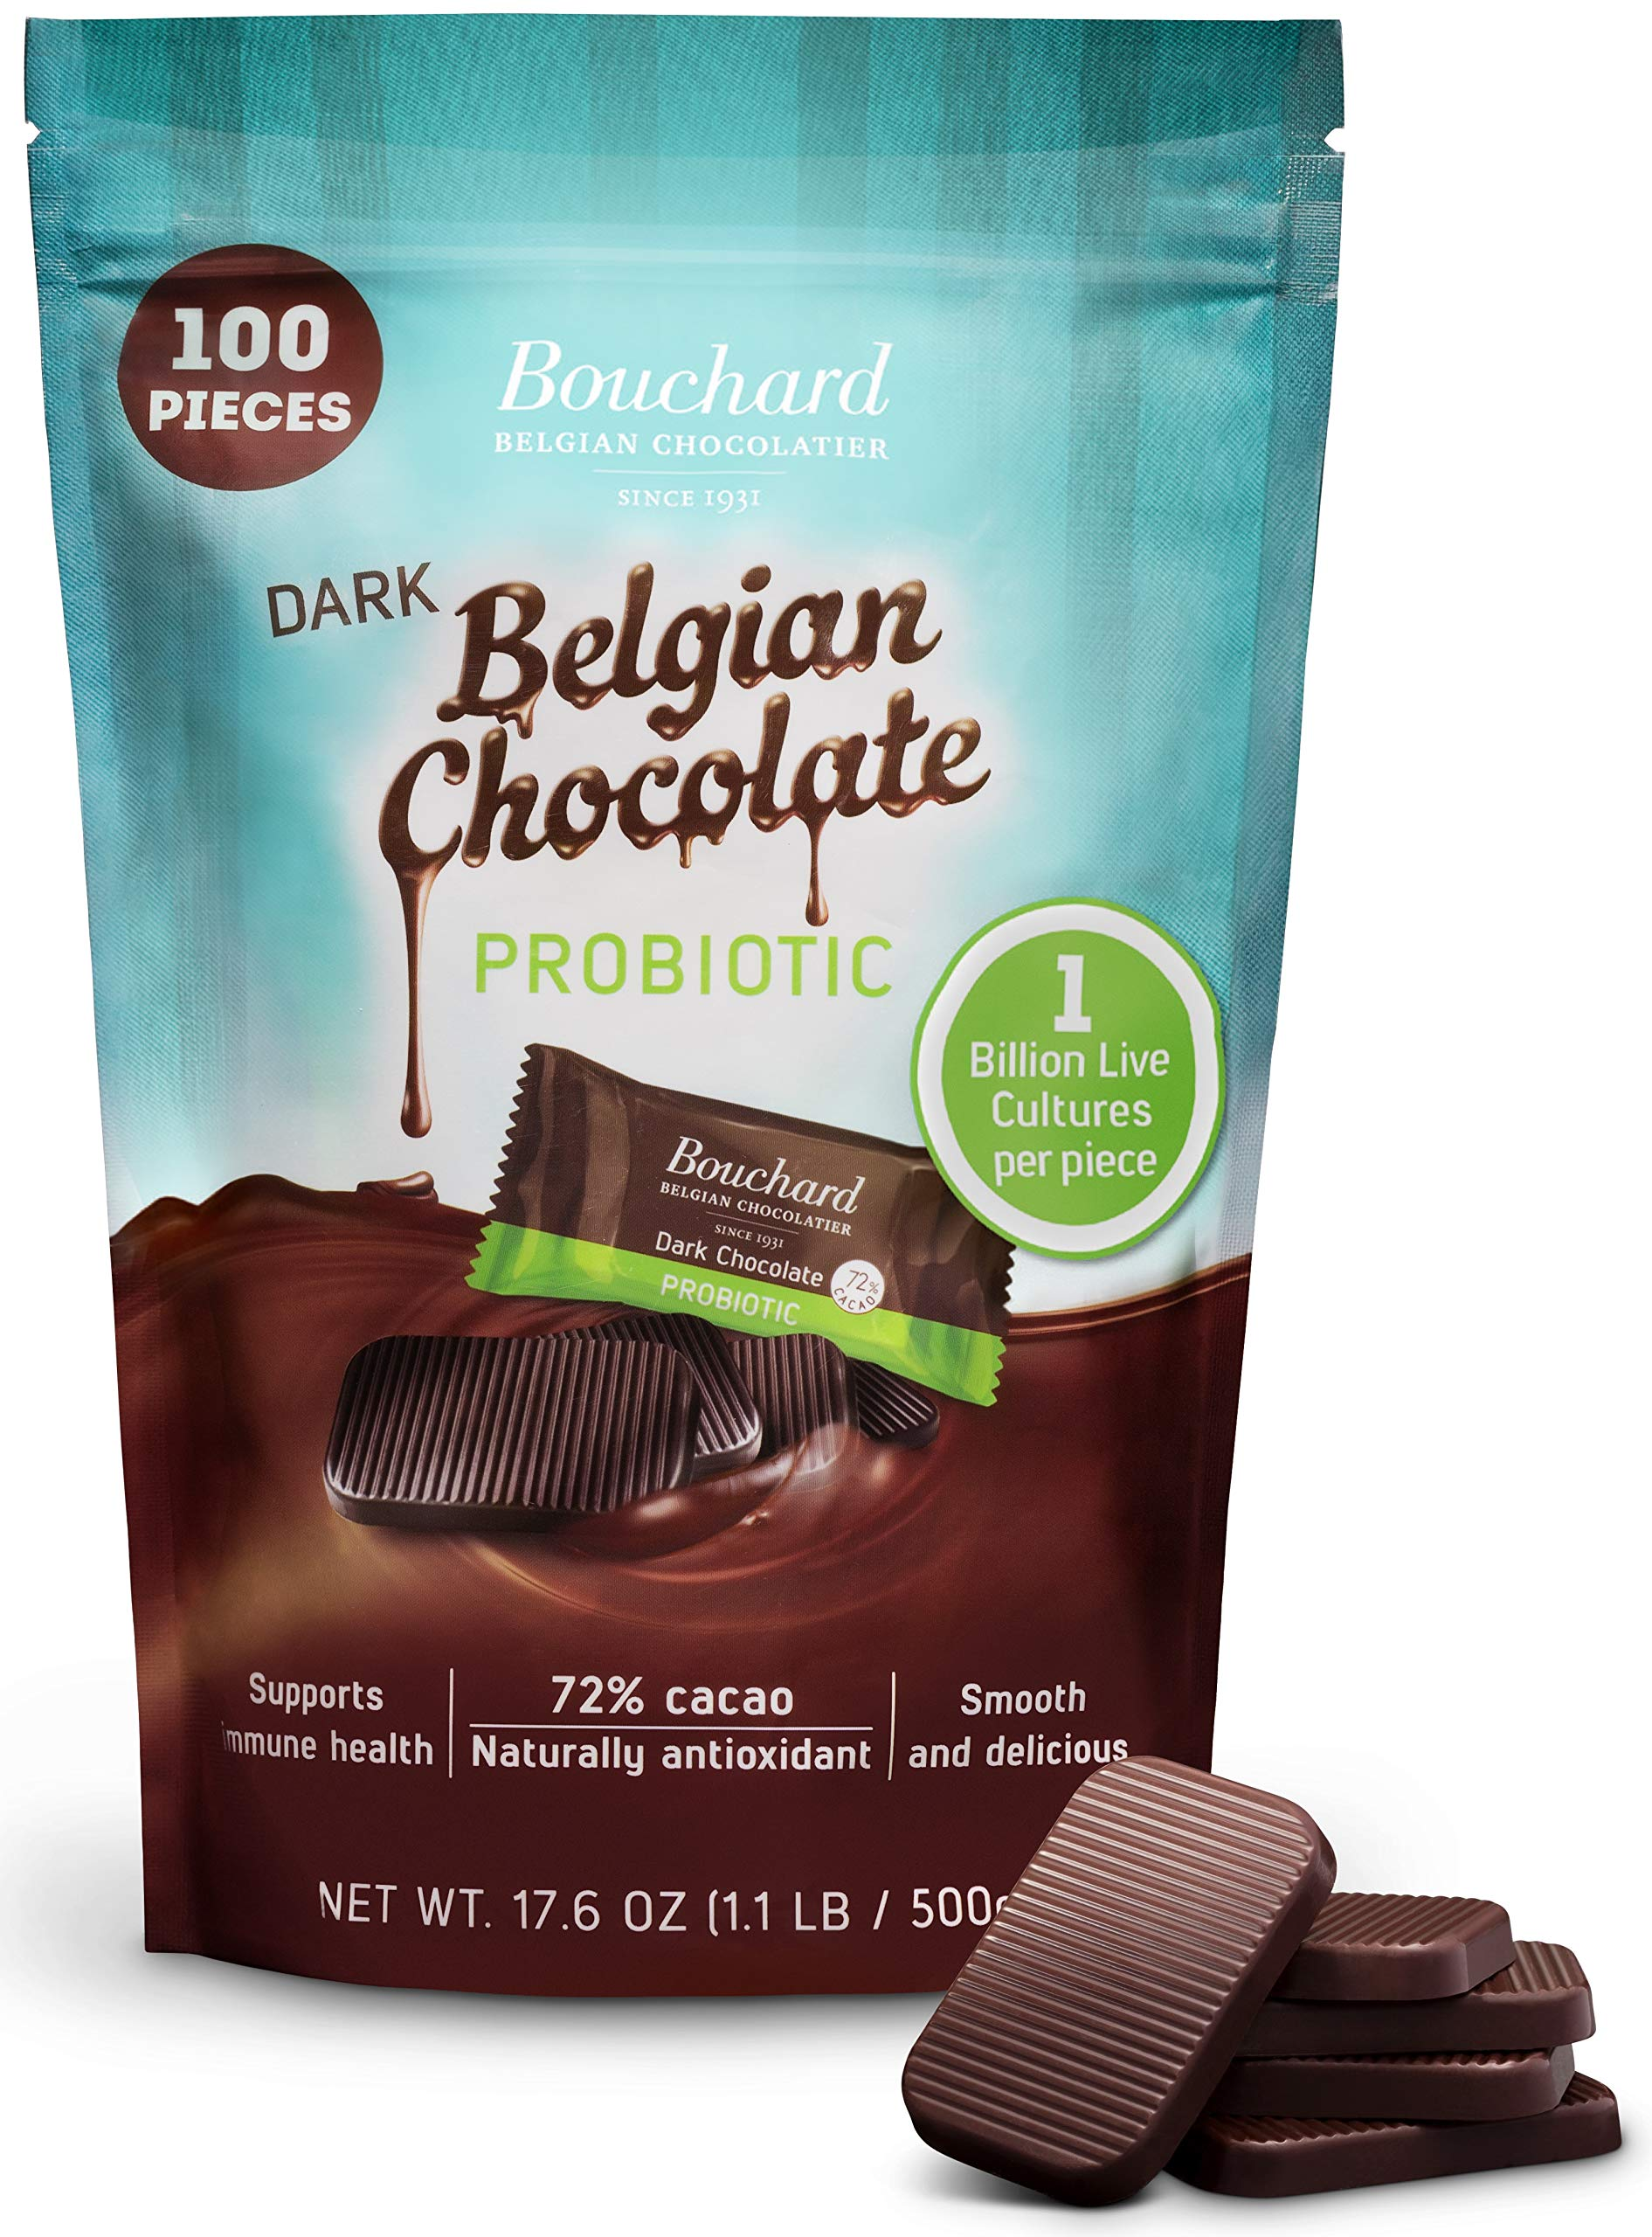 Bouchard Belgian Dark Chocolate Gluten-Free 72 % Cacao with Probiotics (100 Pieces) by Bouchard